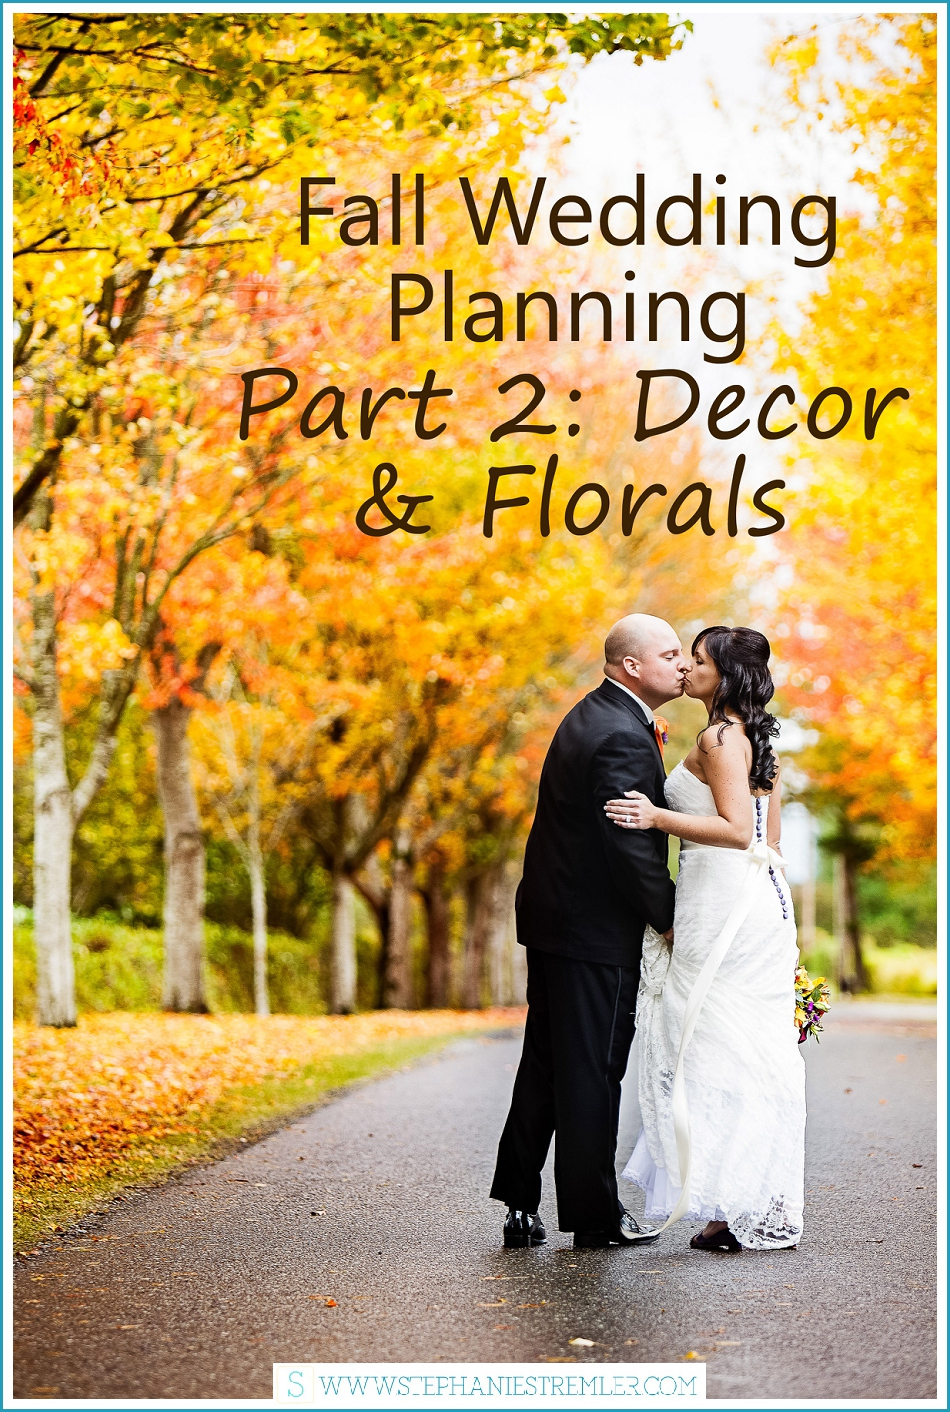 Fall wedding planning : Decor and florals